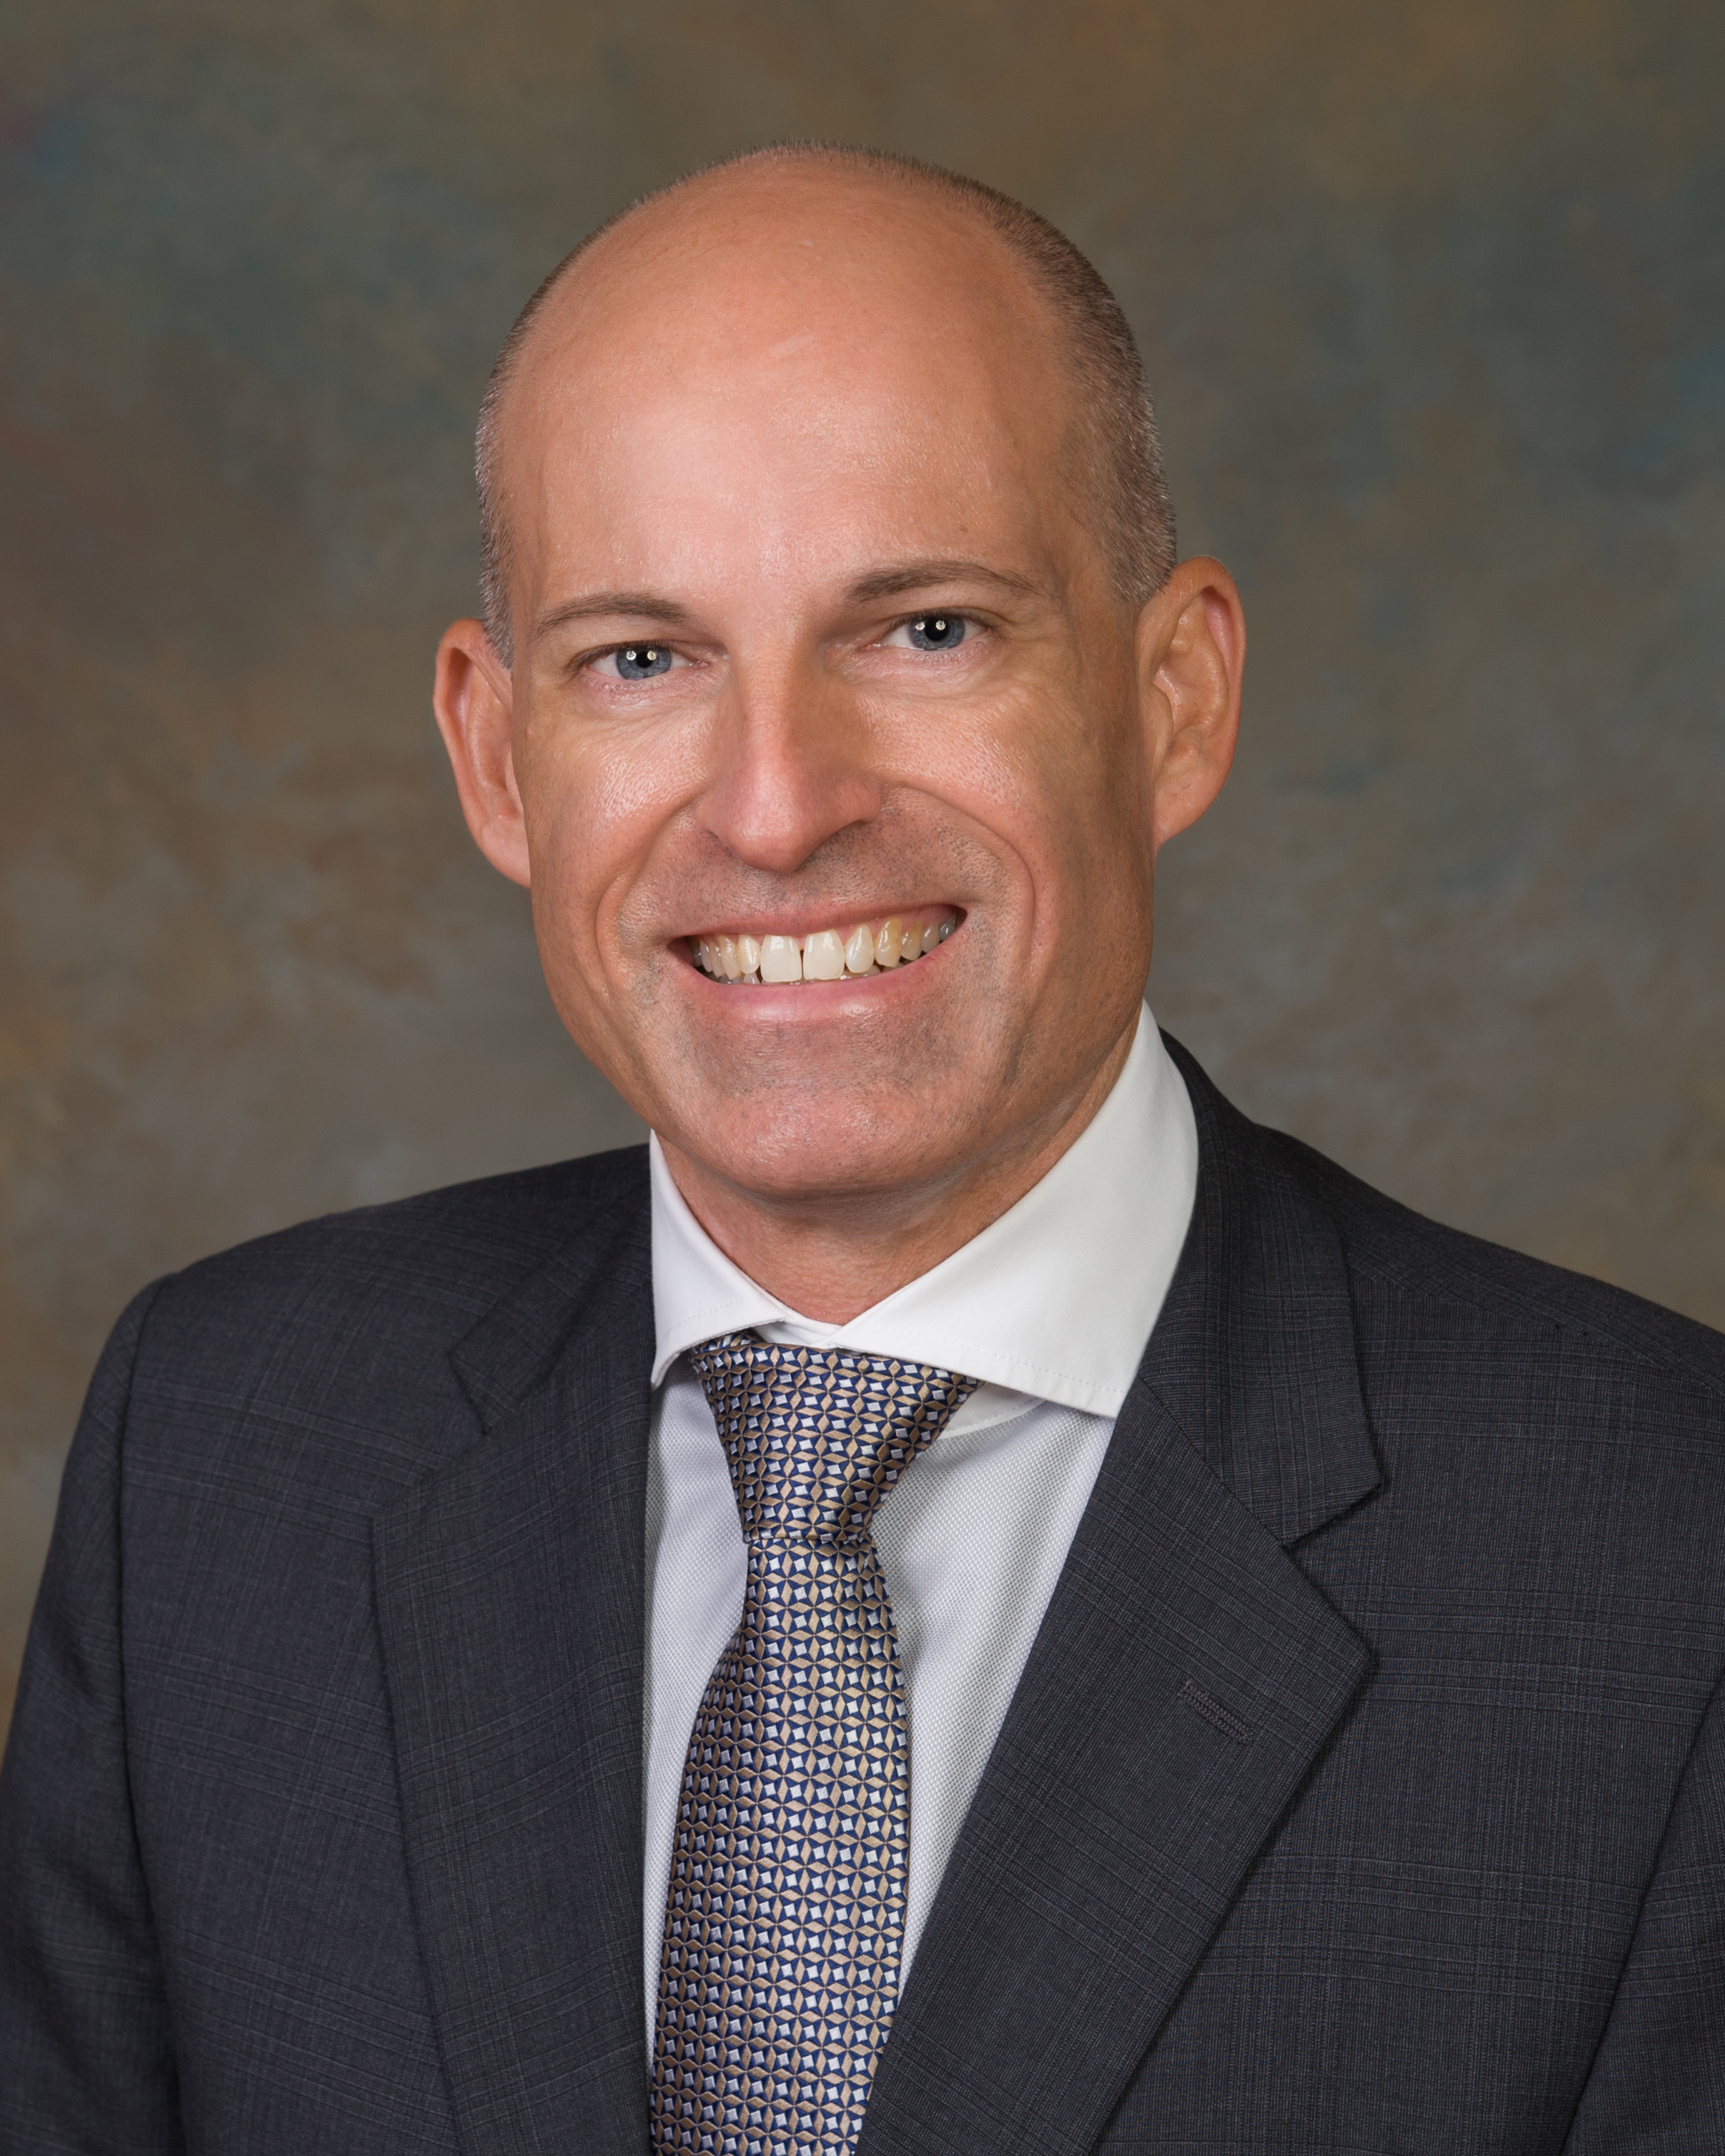 Steve Lovejoy, Head of School